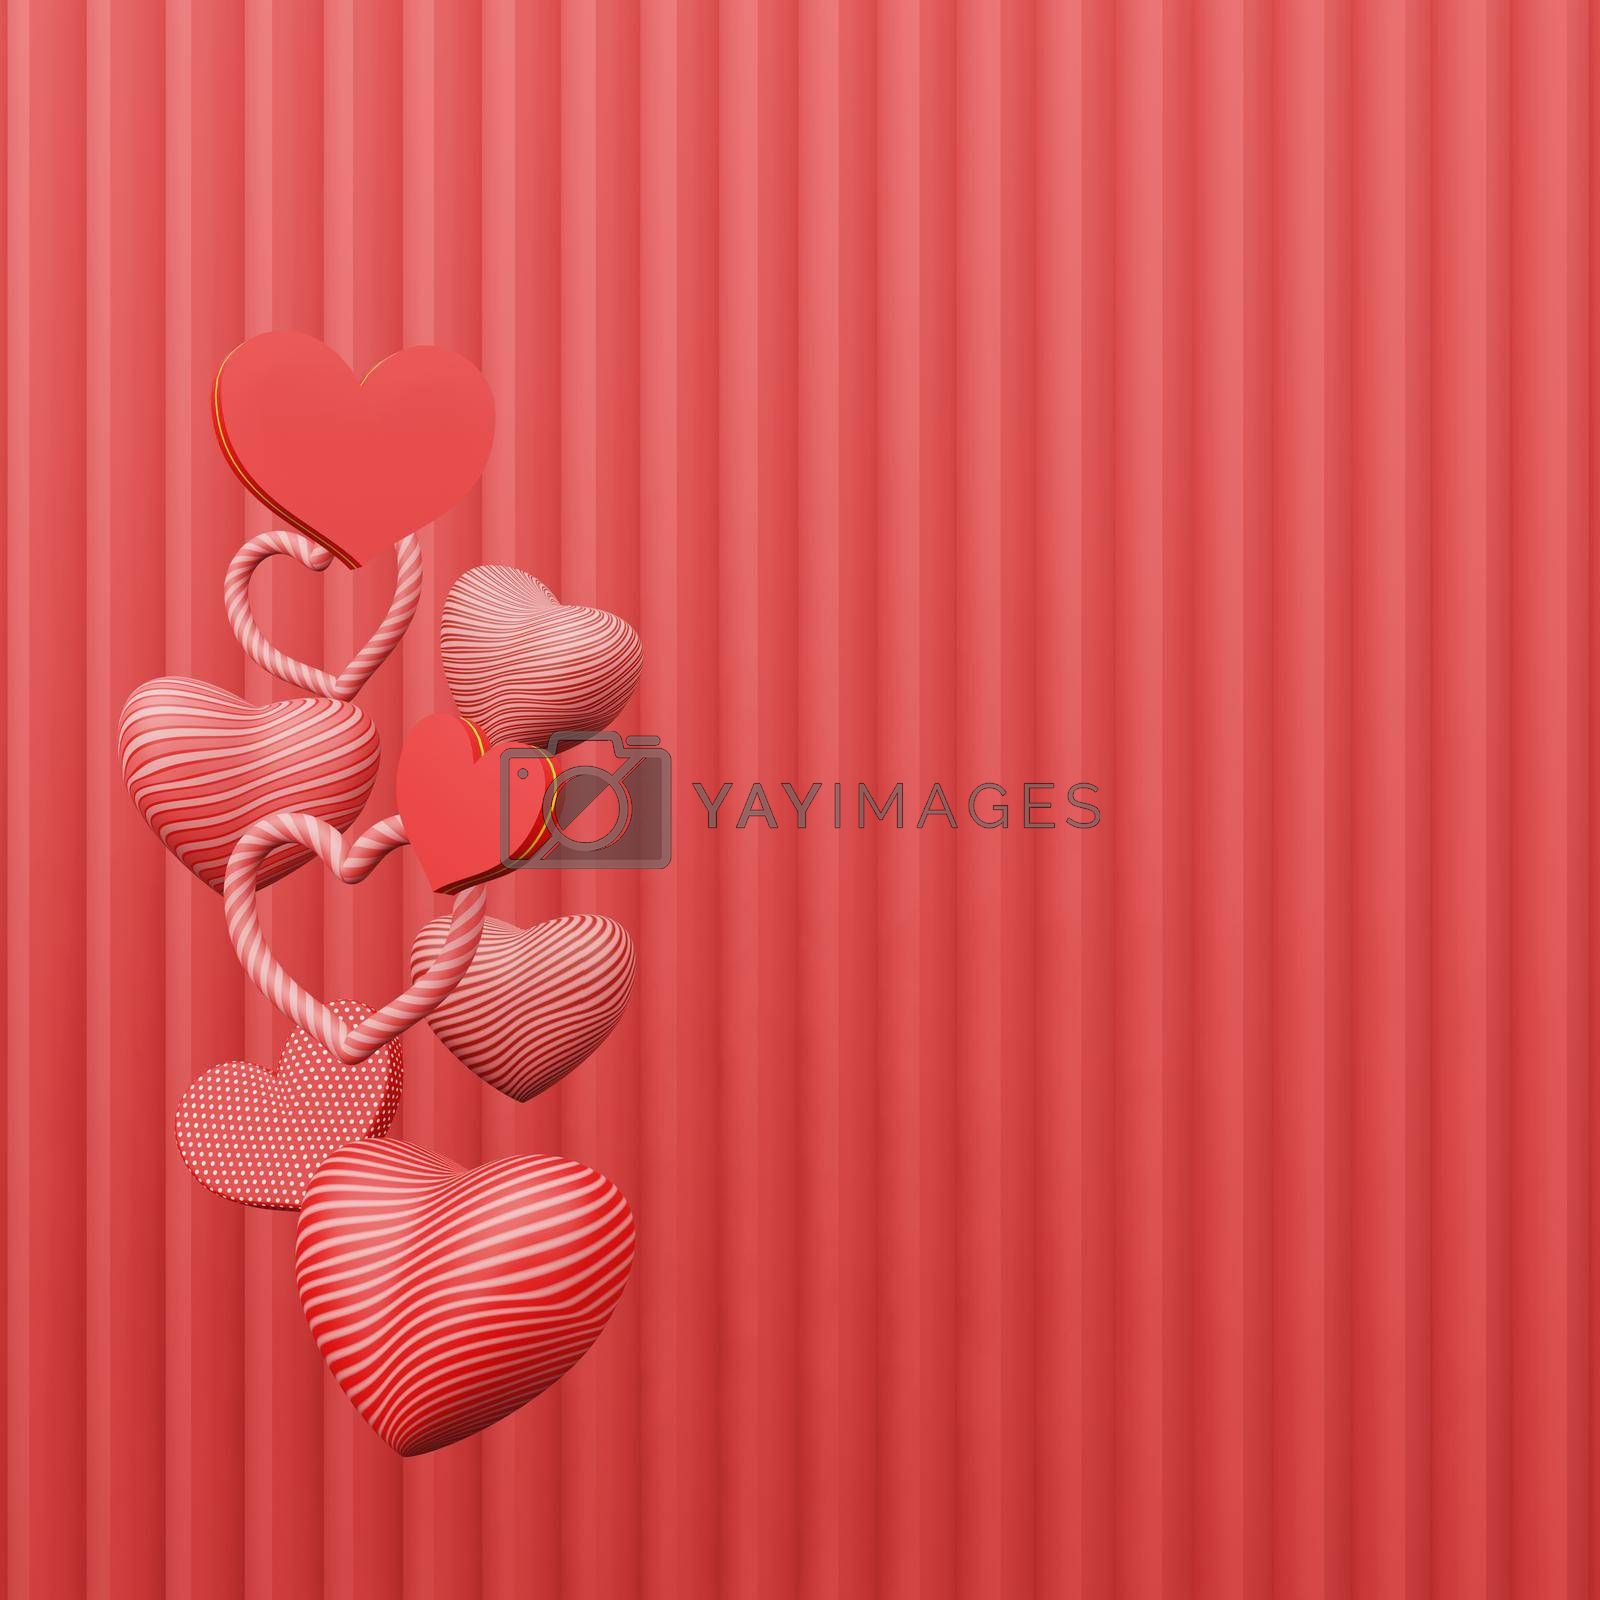 Royalty free image of Beautiful heart sharp floating stack red background copy space by eaglesky